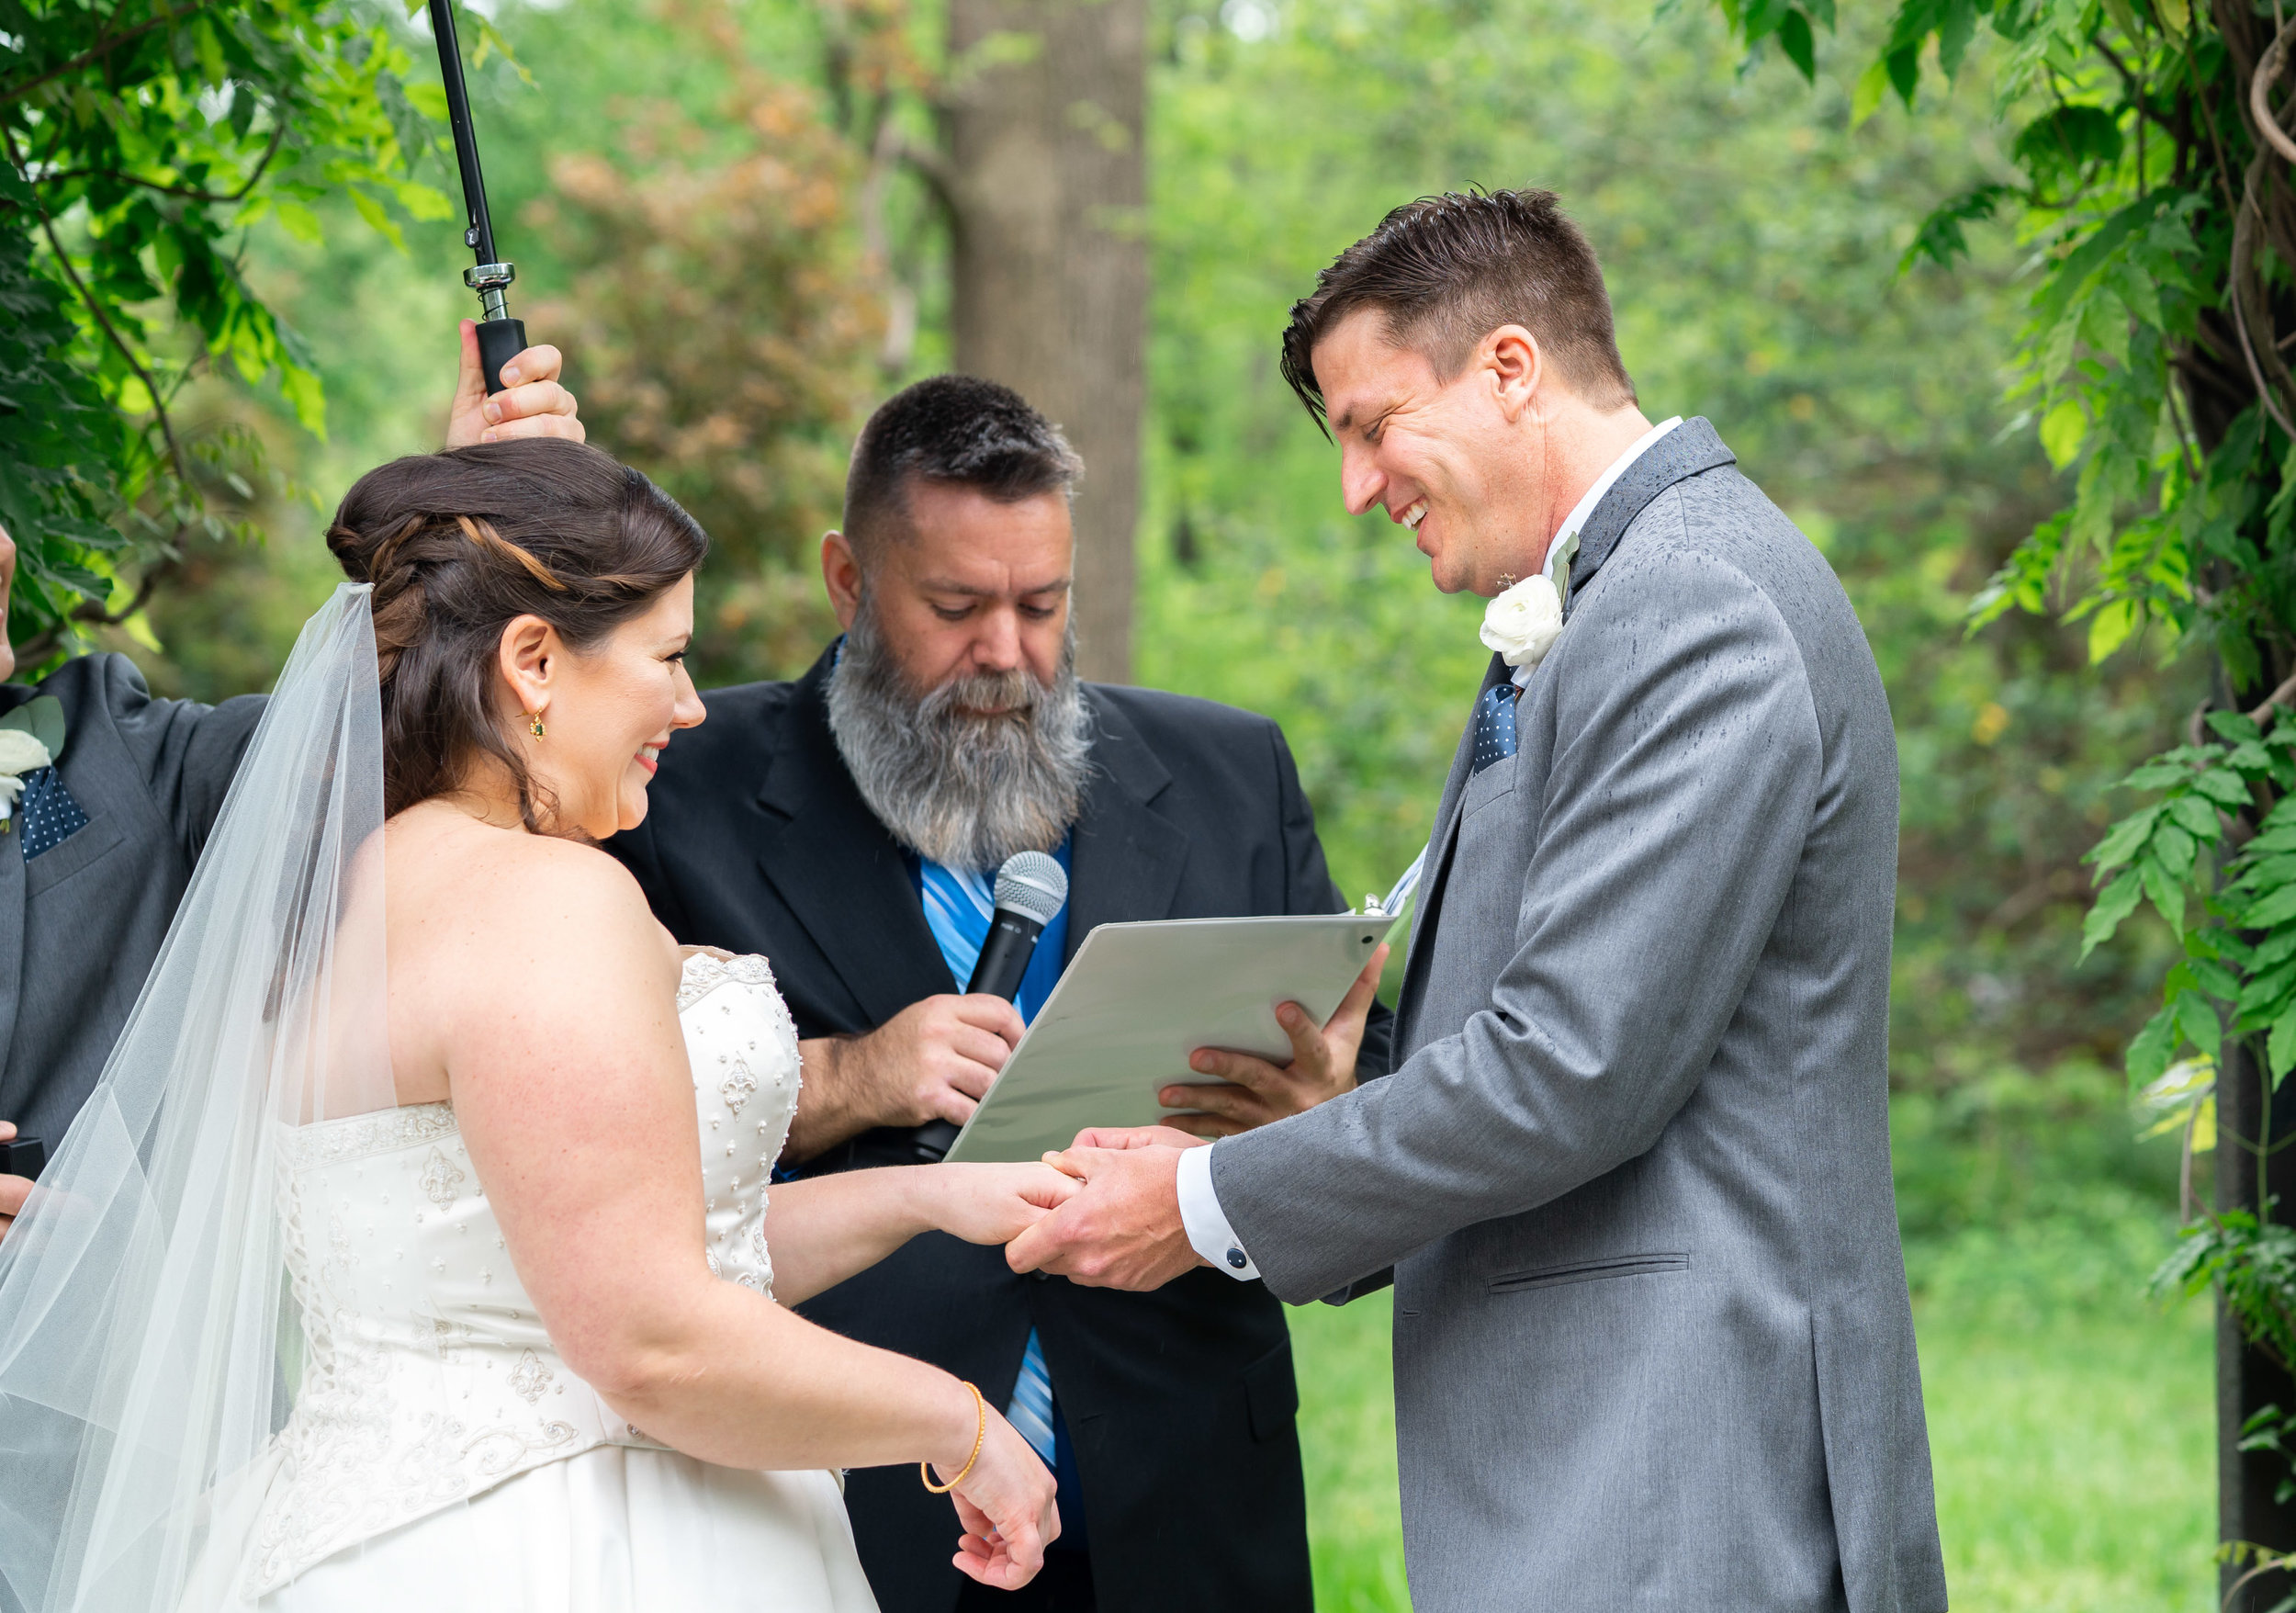 Bride and groom smiling during ceremony under ivy arch at Hendry House wedding